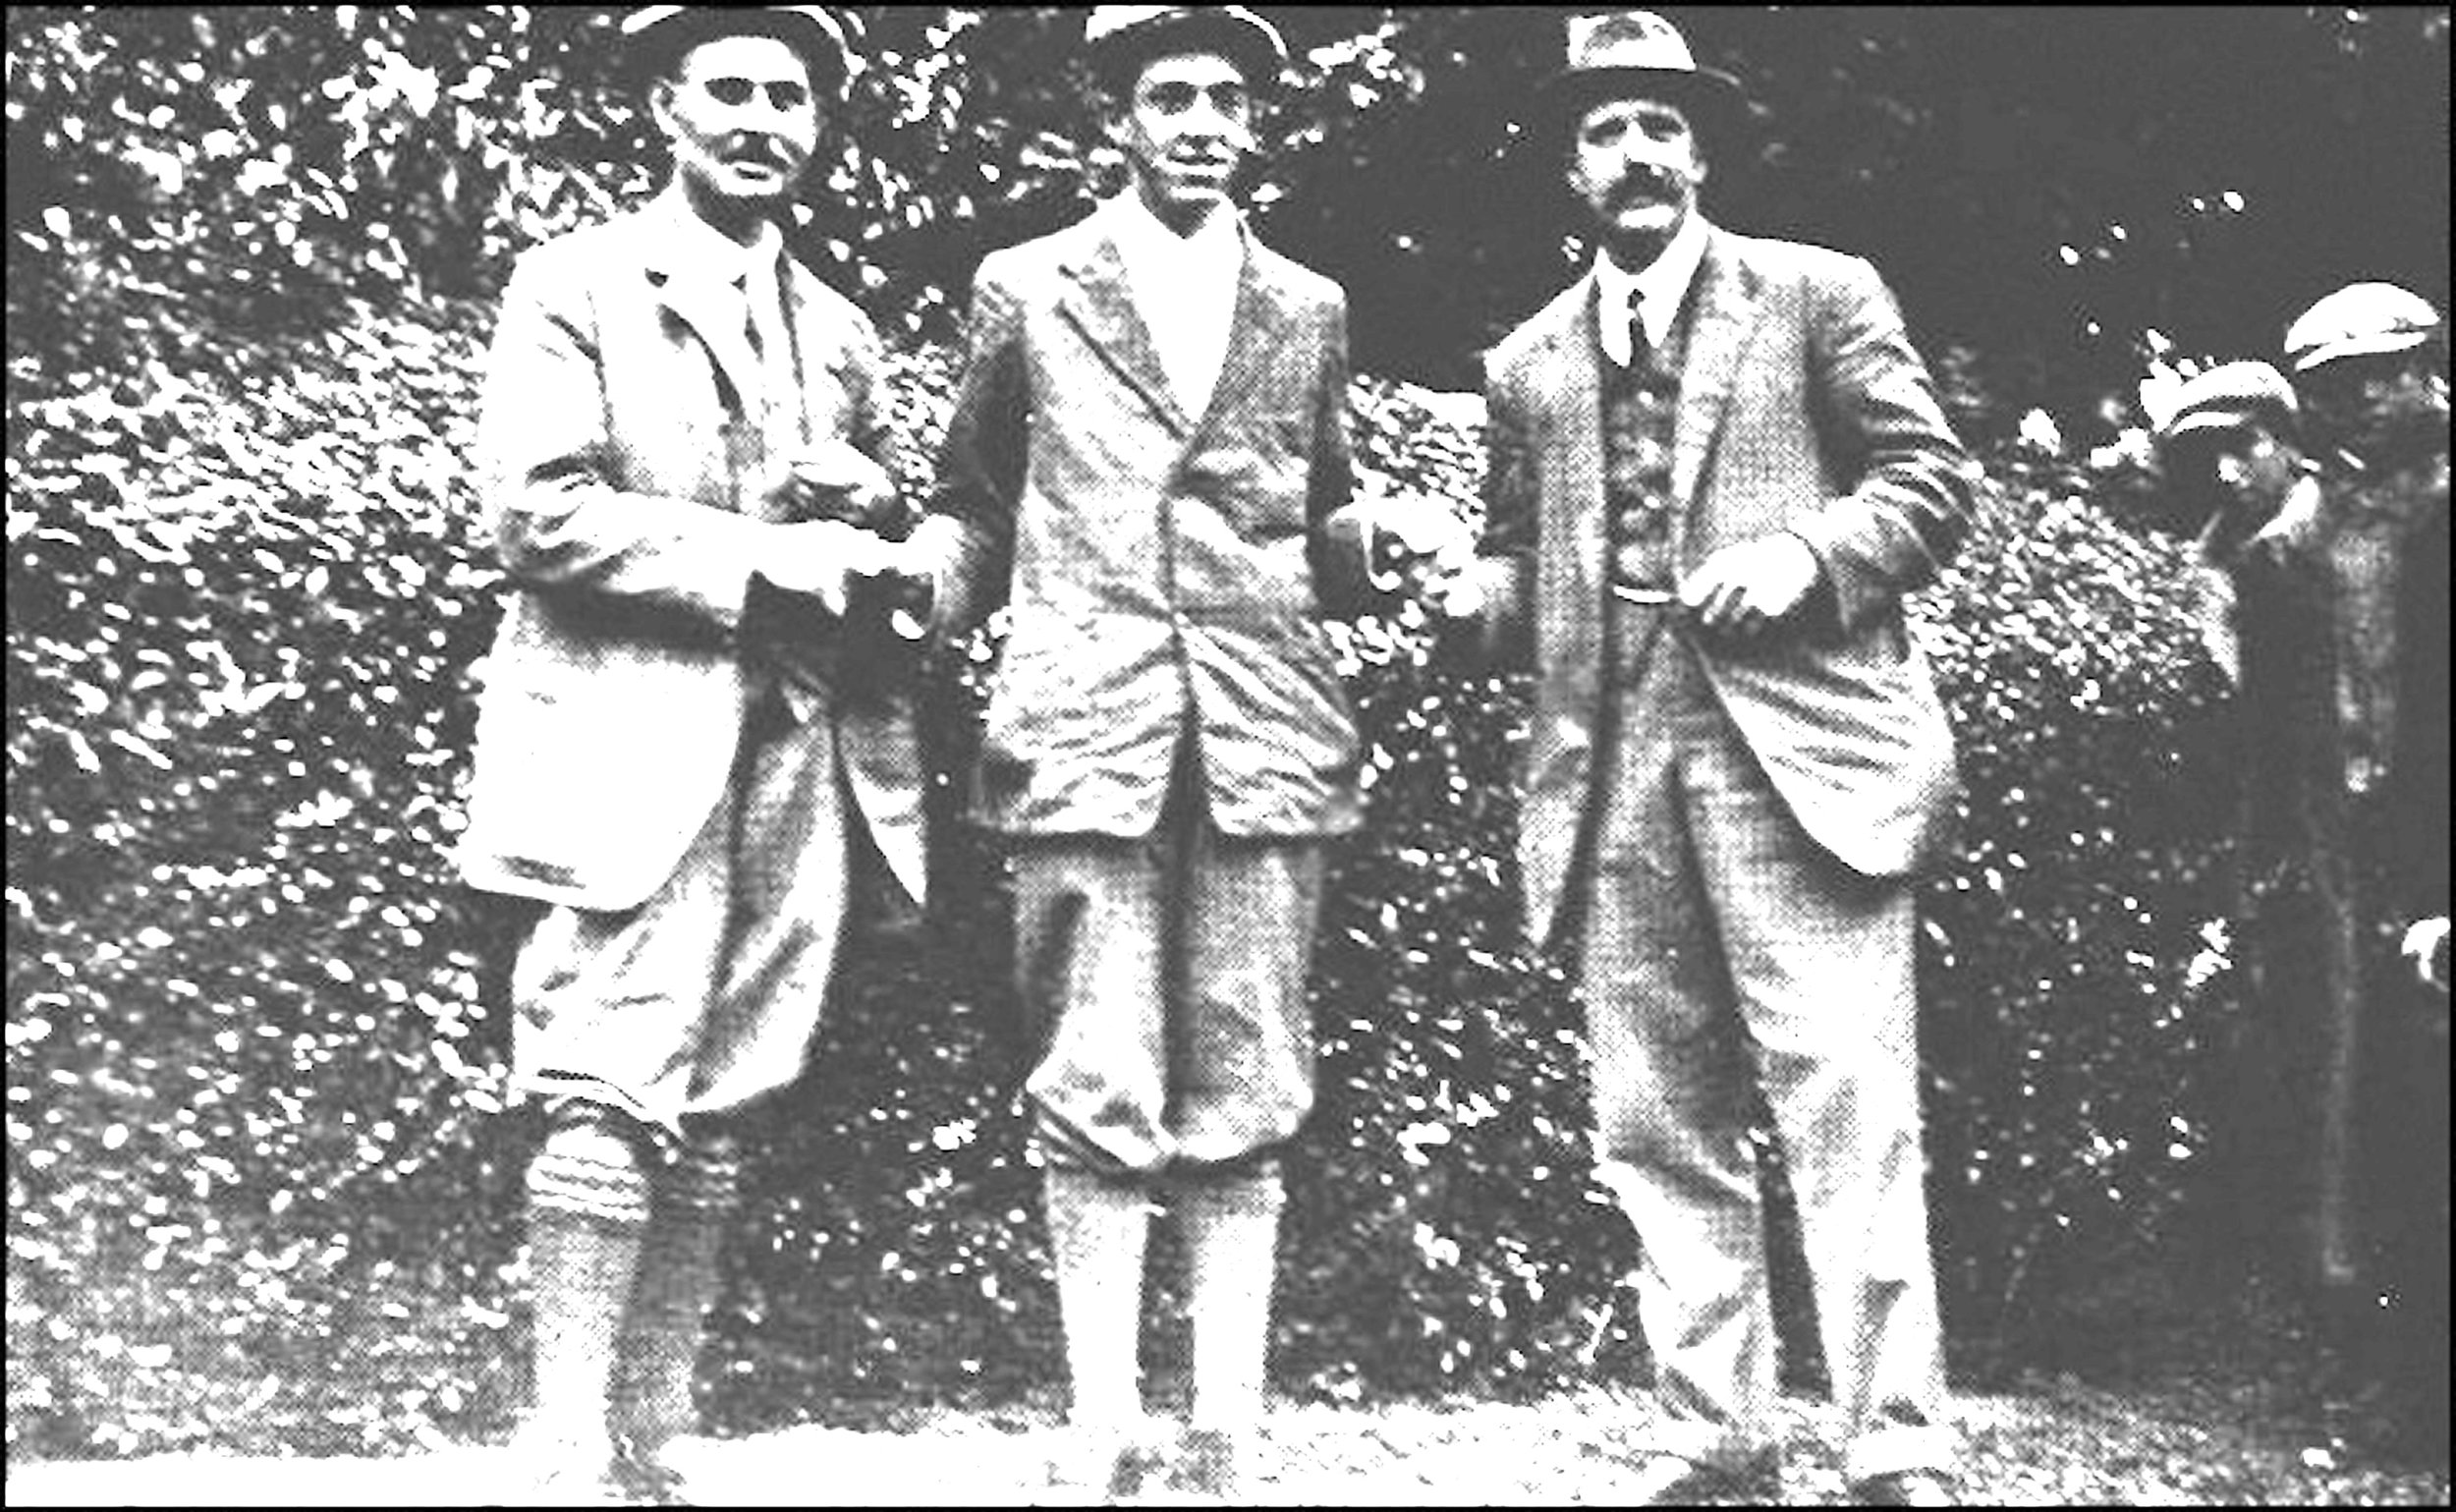 Harry Vardon, Francis Ouimet and Ted Ray at the 1913 U.S. Open.